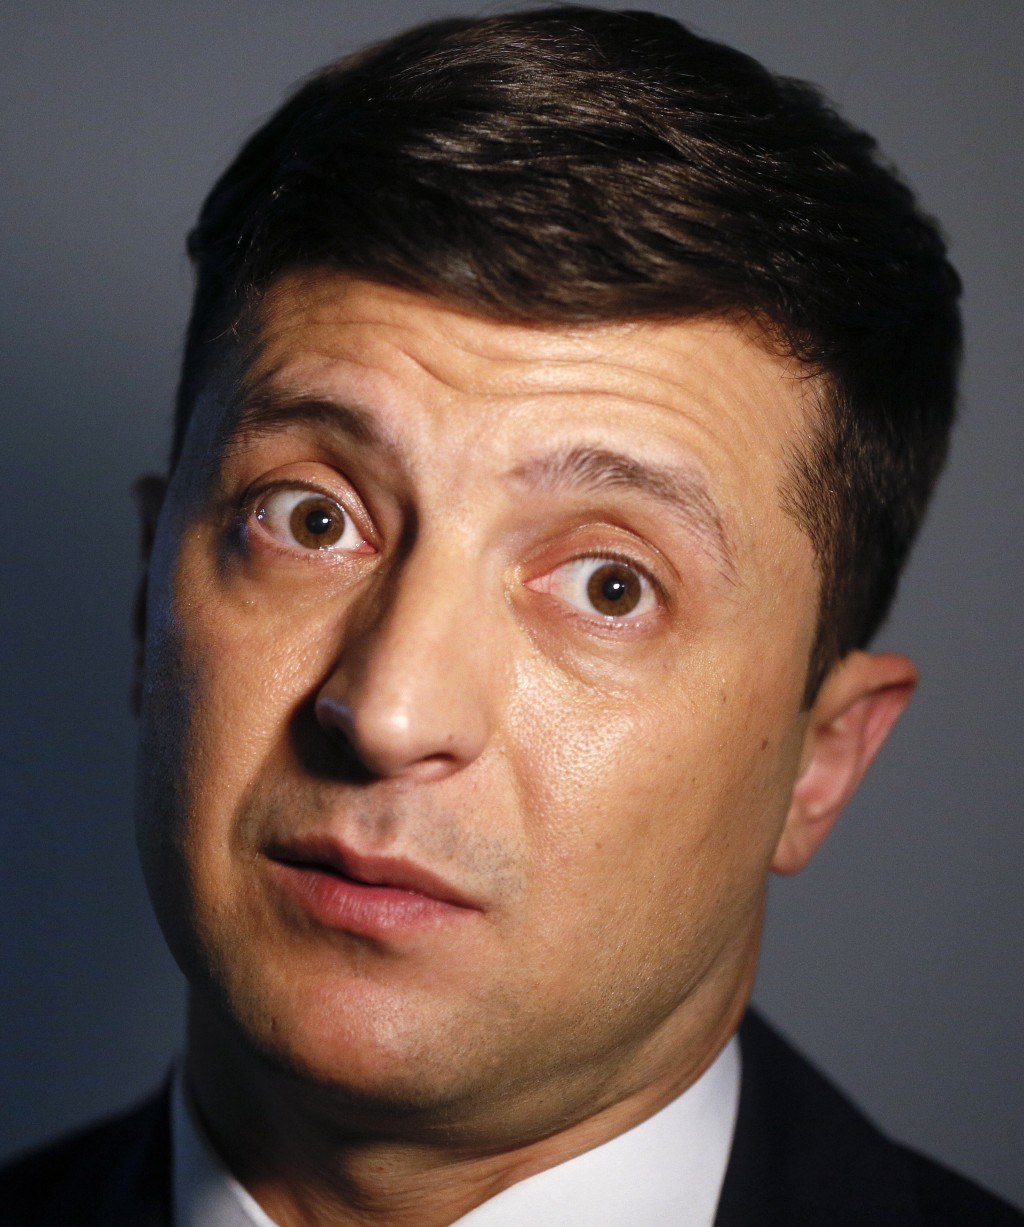 Ukrainian comedian and presidential candidate Volodymyr Zelenskiy speaks during his interview with The Associated Press, in Kiev, Ukraine, Wednesday,